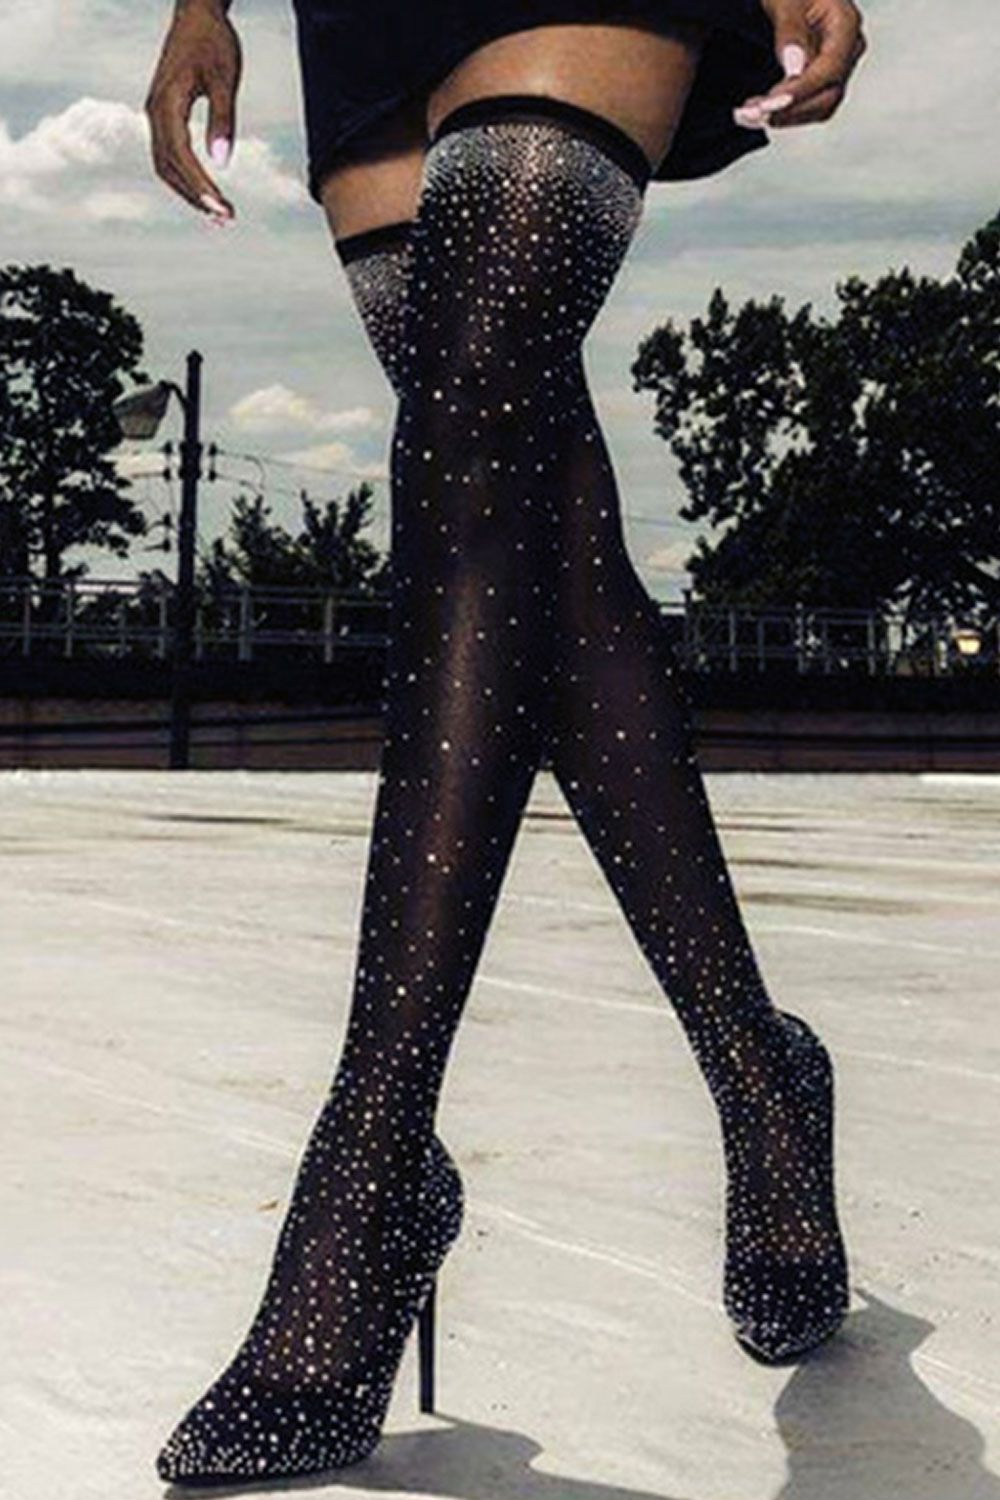 873e1e978a4 Black Rhinestone Stiletto Heel Thigh High Boots in 2019